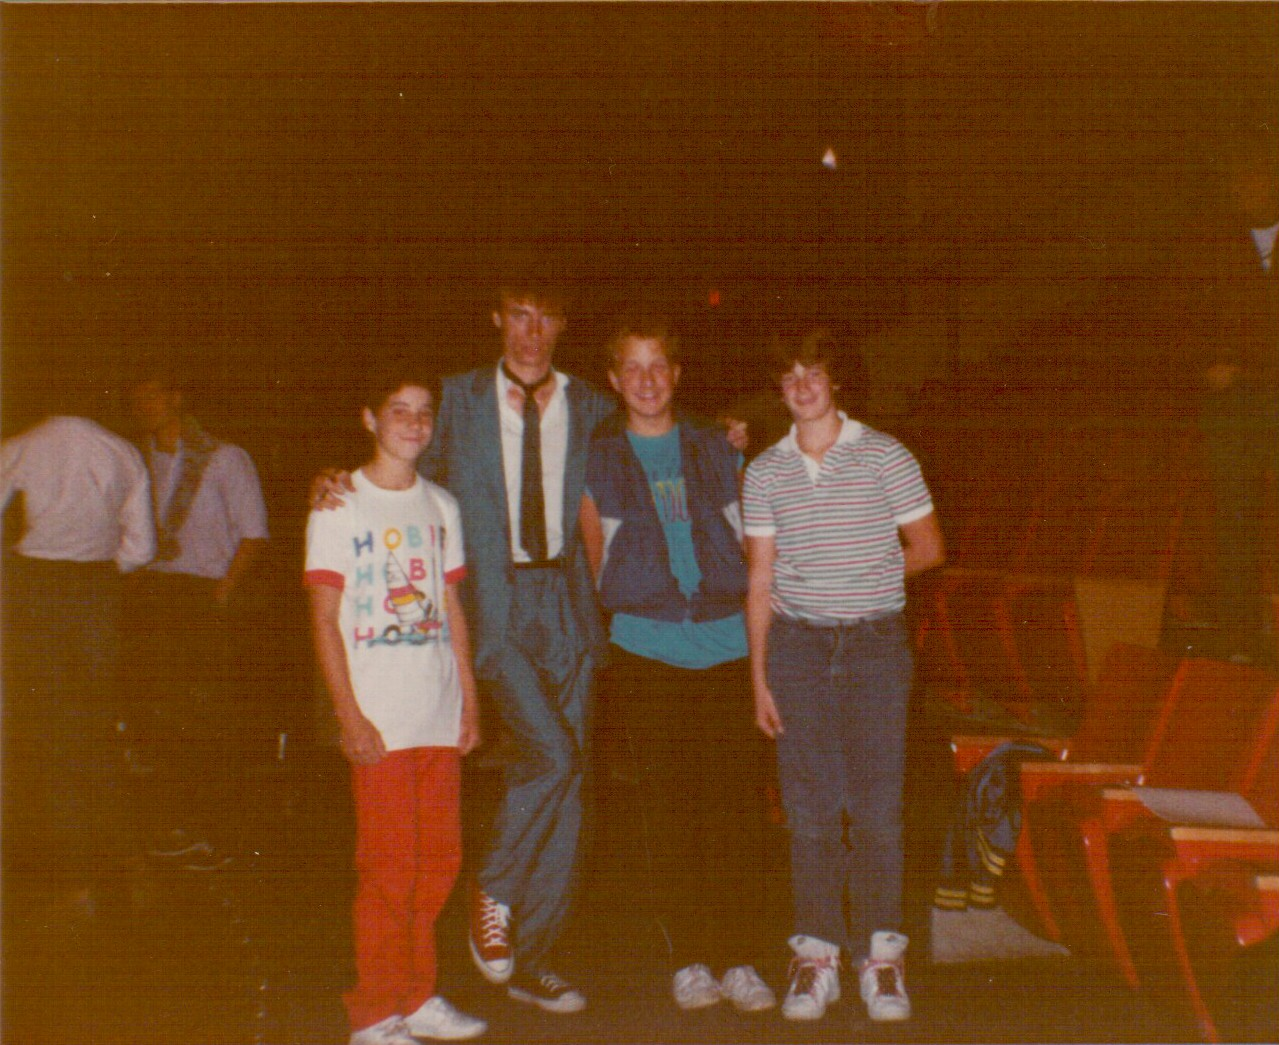 Left to right: Me, Steve Taylor, and my two friends from school. Photo by my mom.